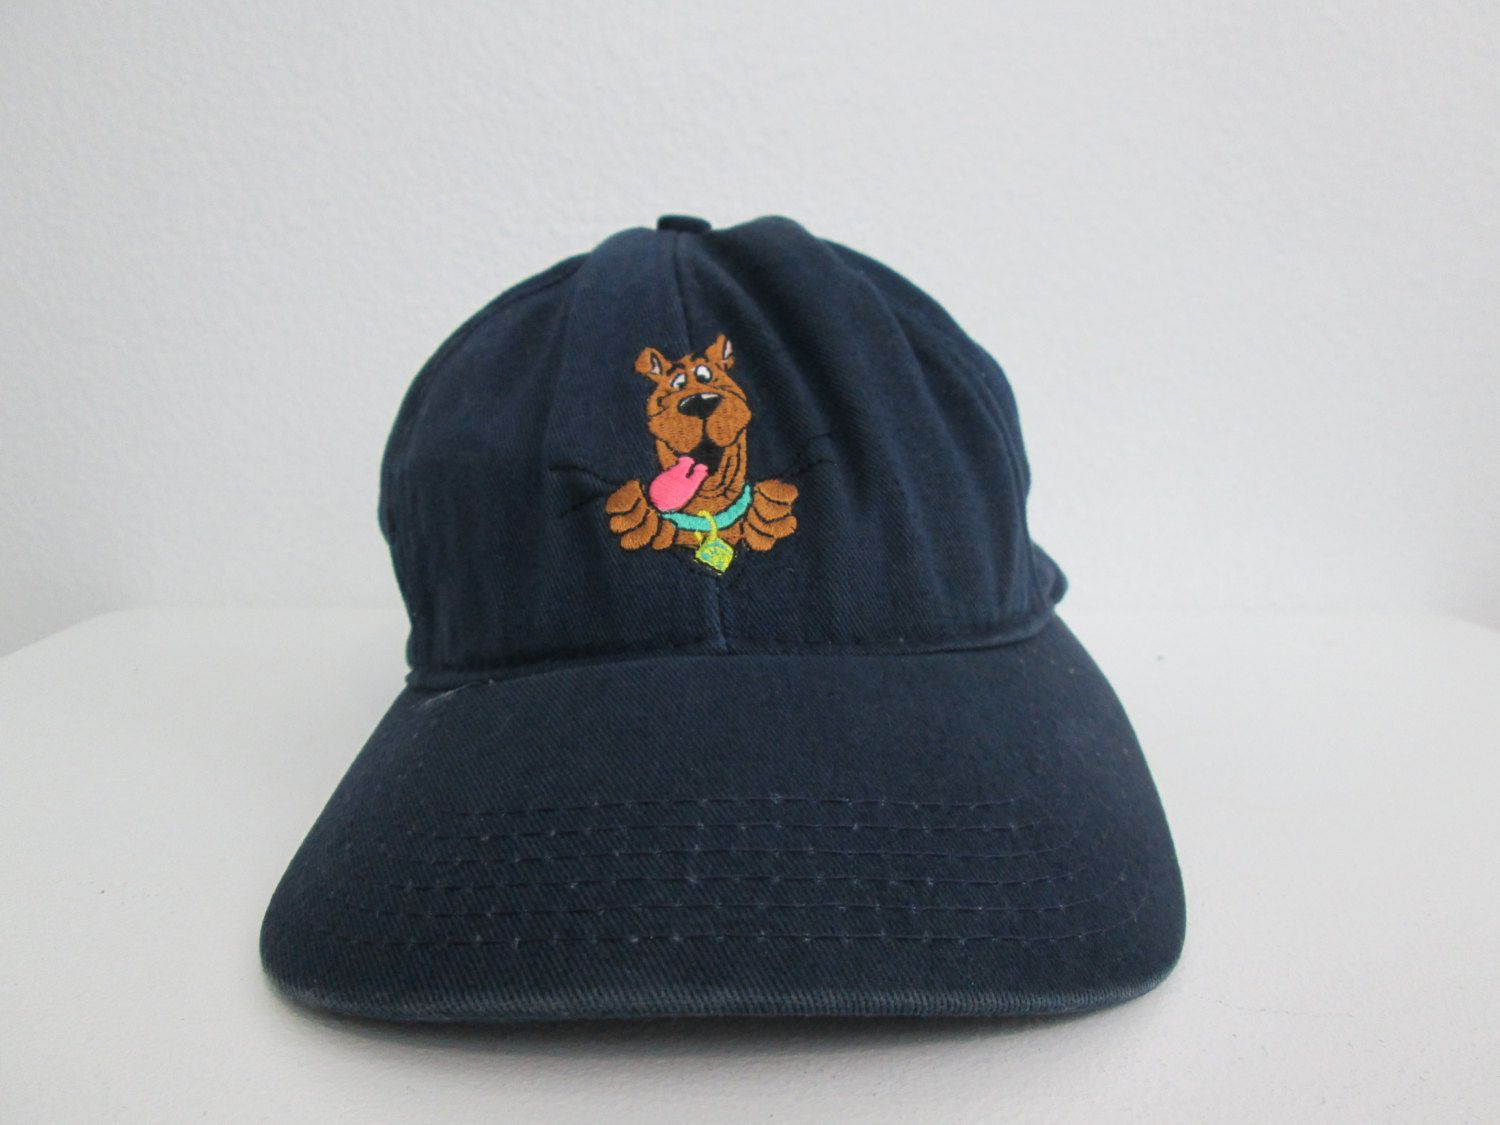 e3999bfab Scooby Doo Hat Cap Hanna Barbera Snapback Navy Blue Embroidered ...